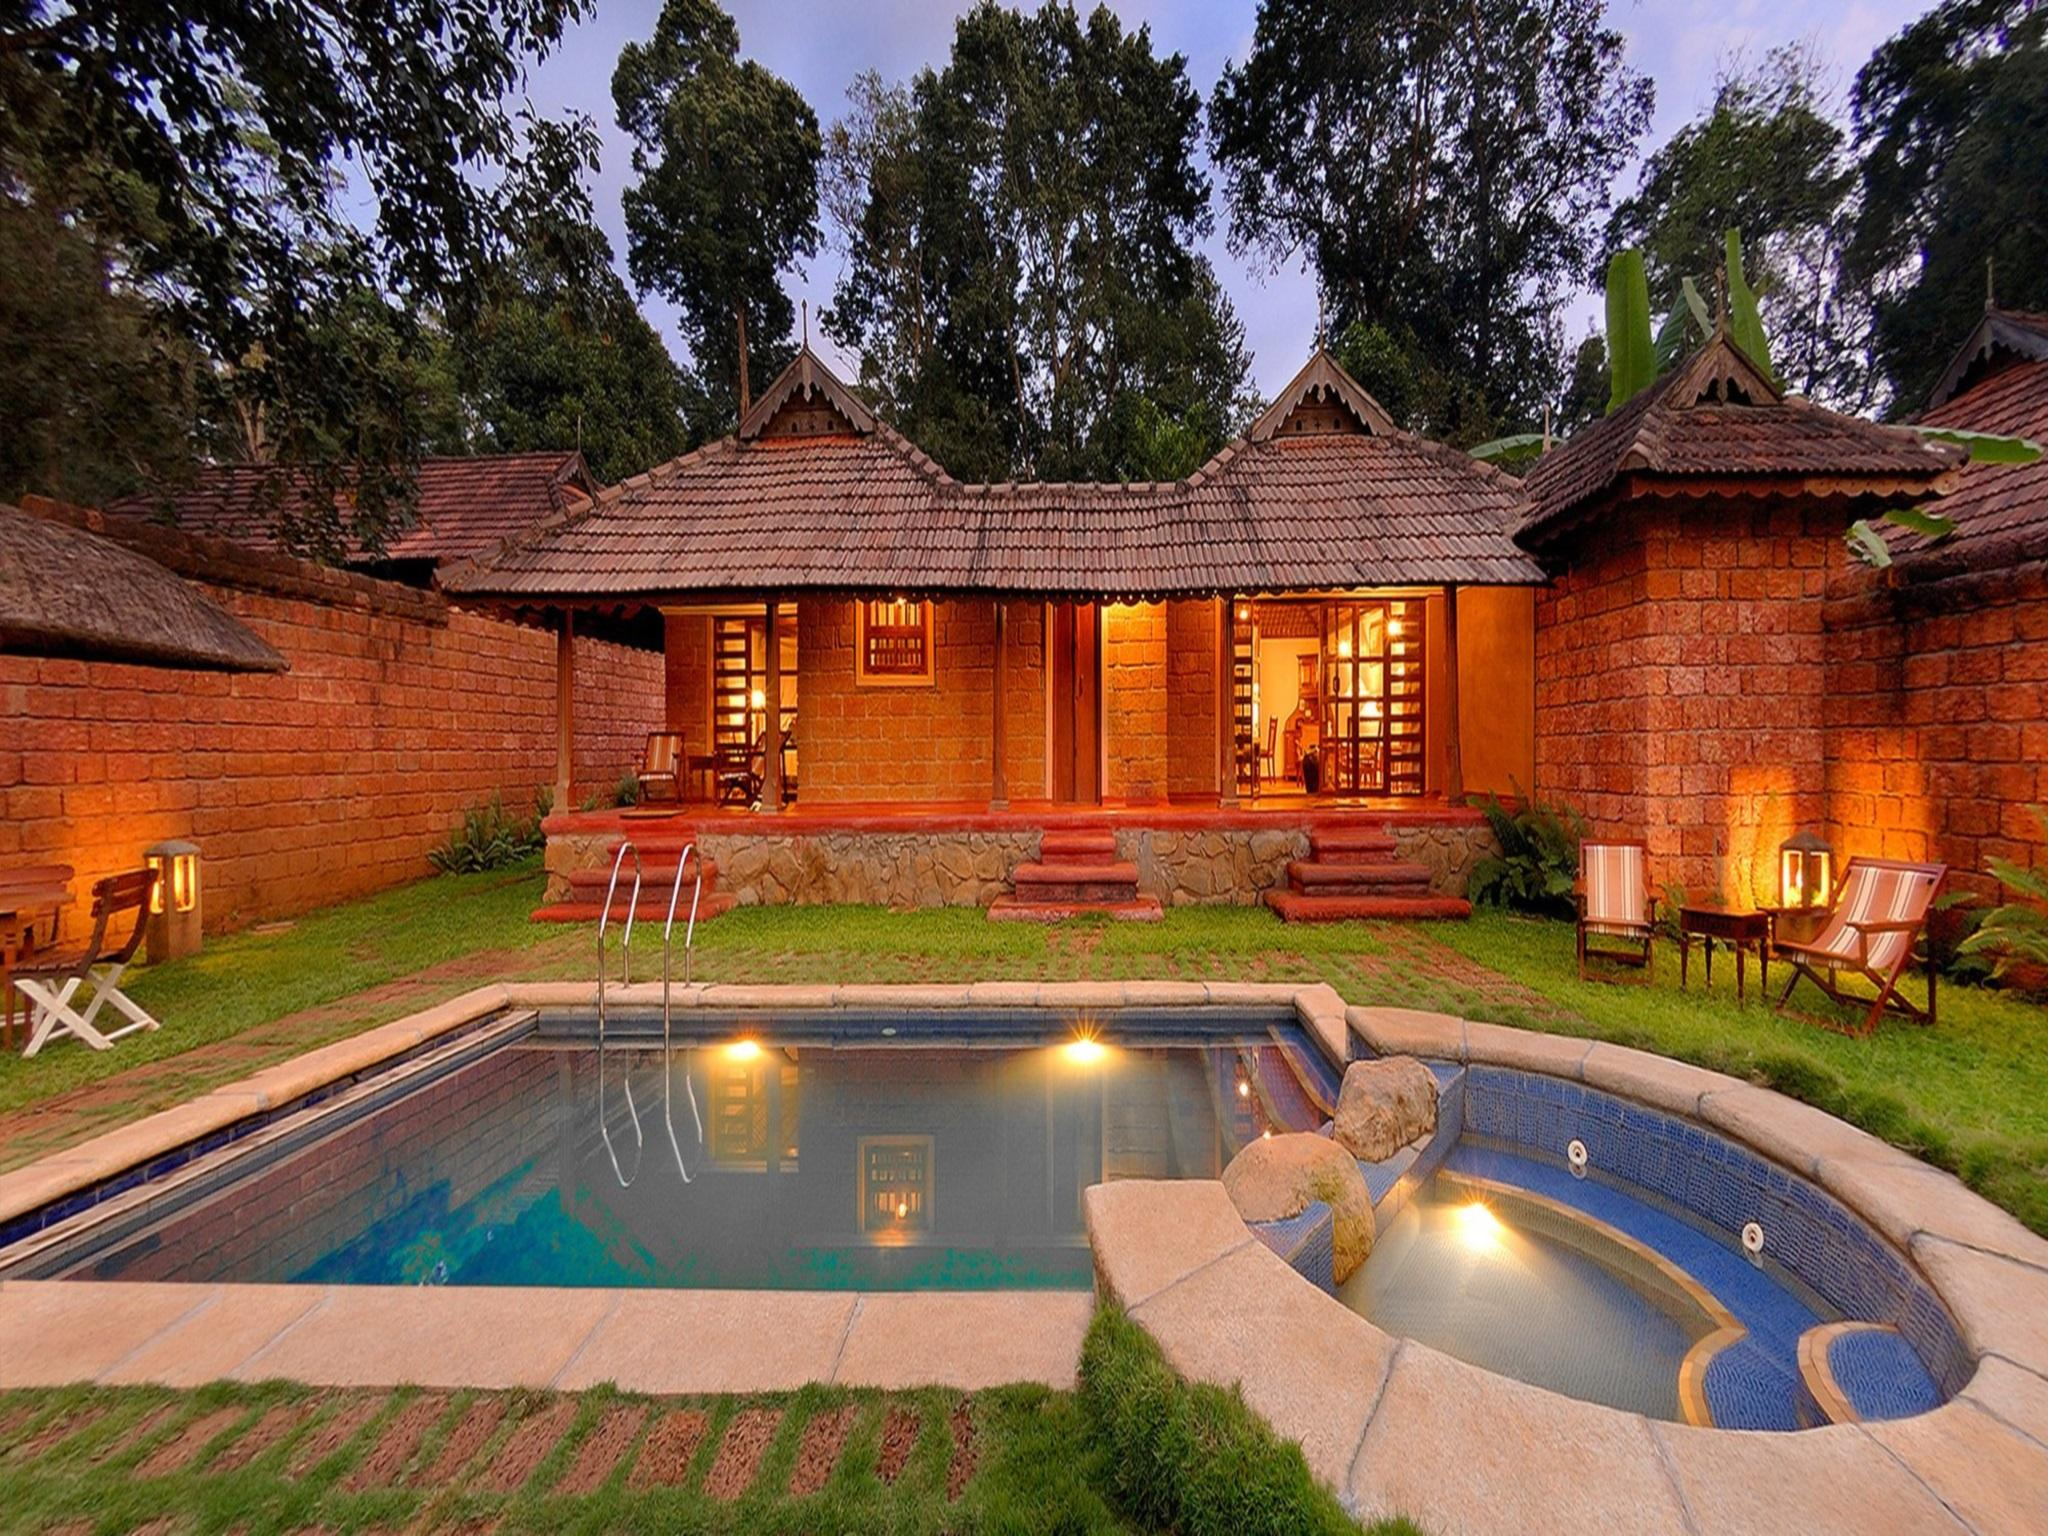 Coorg - Stay at Orange County Package